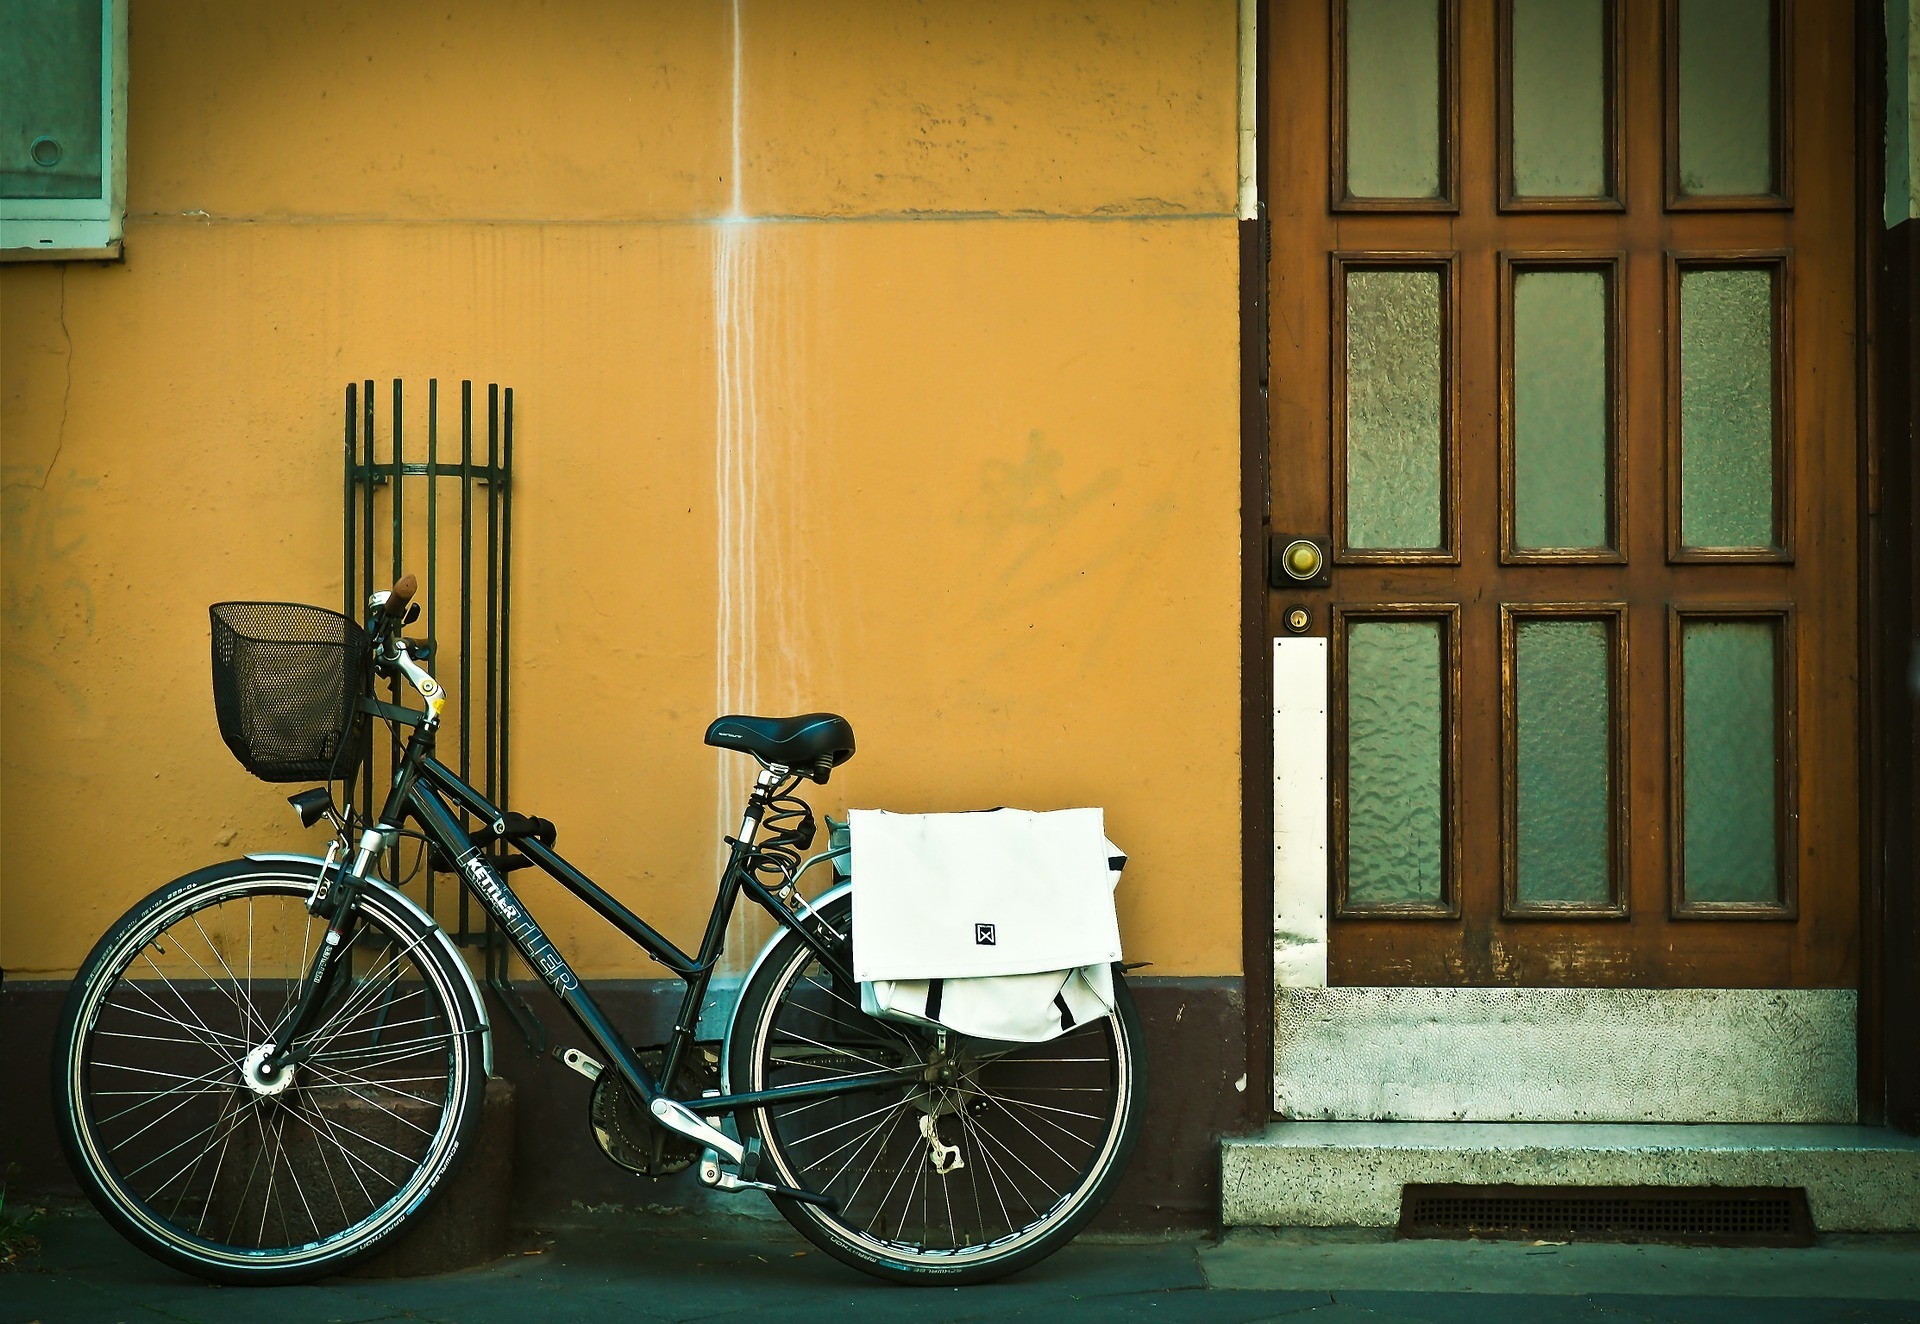 CYCLE-FRIENDLY ACCOMMODATIONS